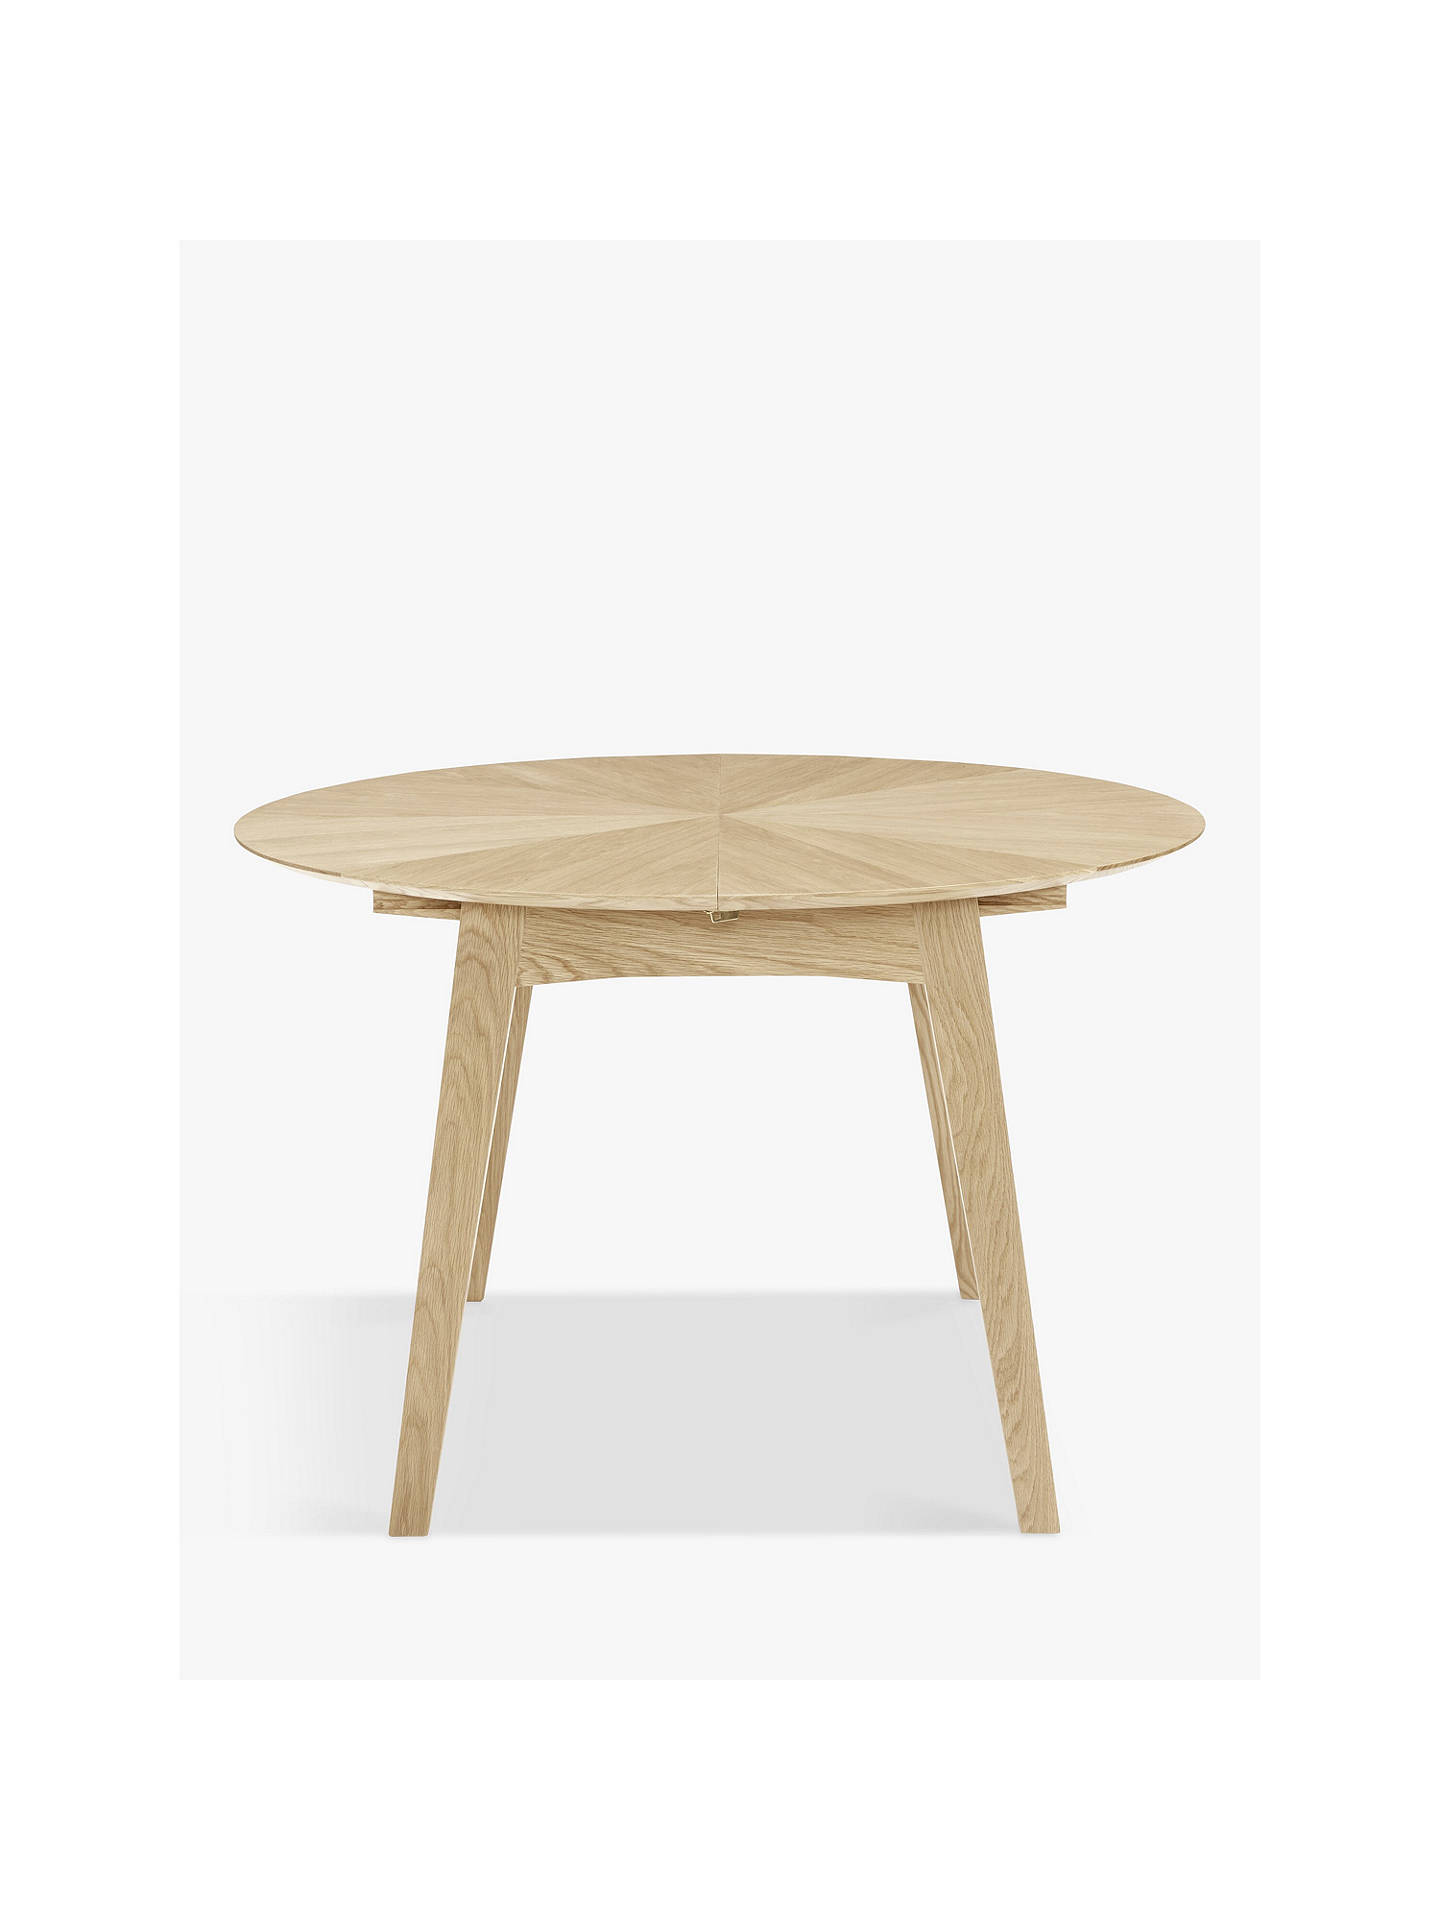 Buy John Lewis & Partners Duhrer 4-6 Seater Extending Round Dining Table, Oak Online at johnlewis.com